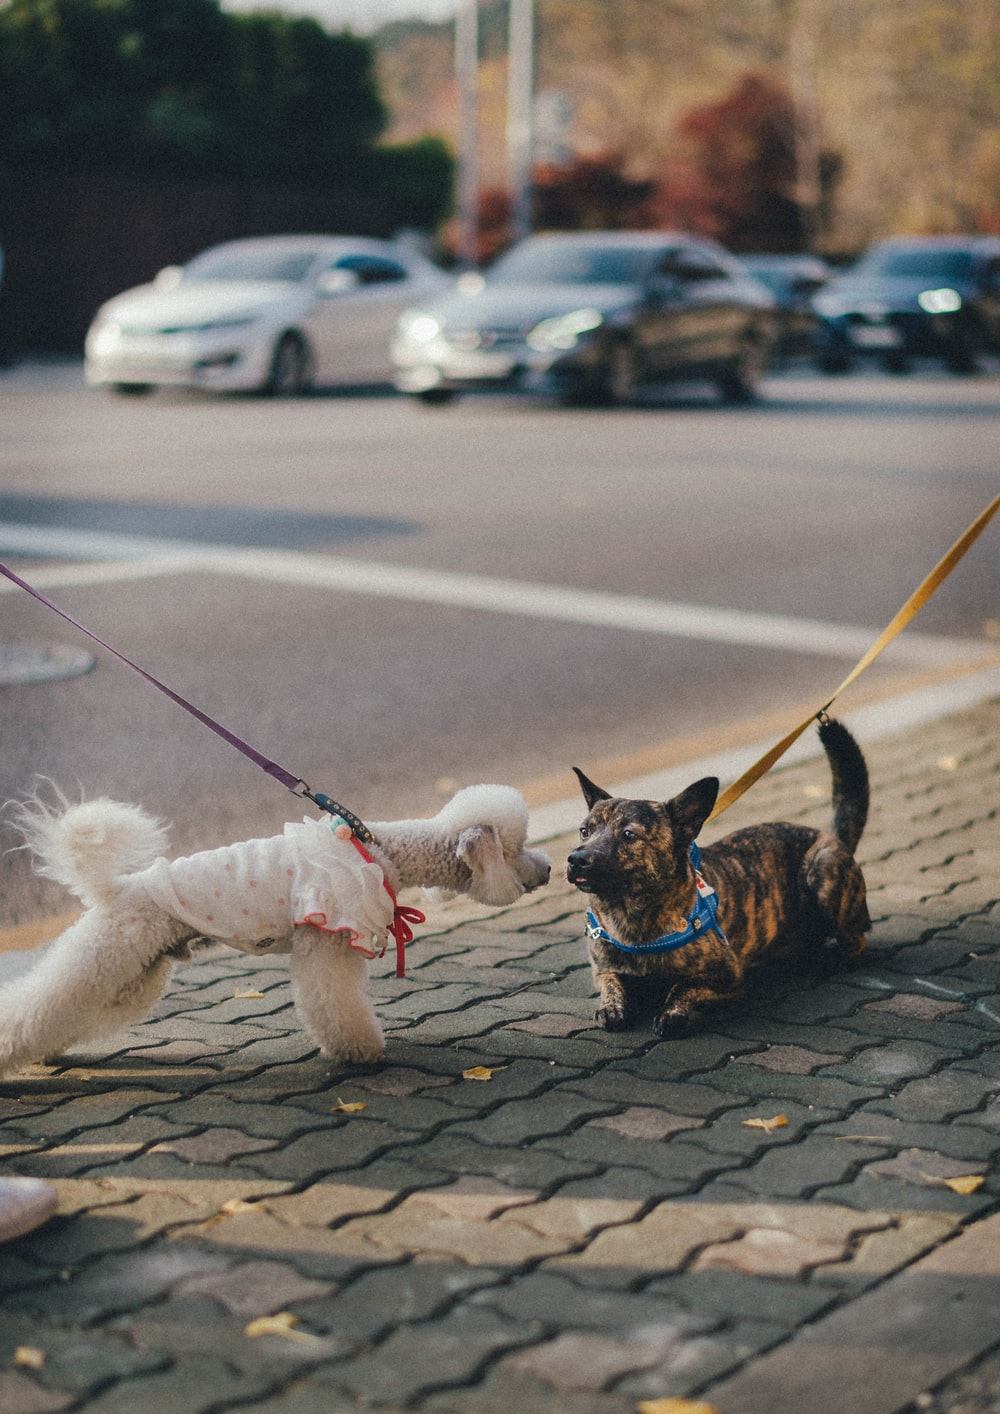 brown and black short coated small dog with leash on road during daytime